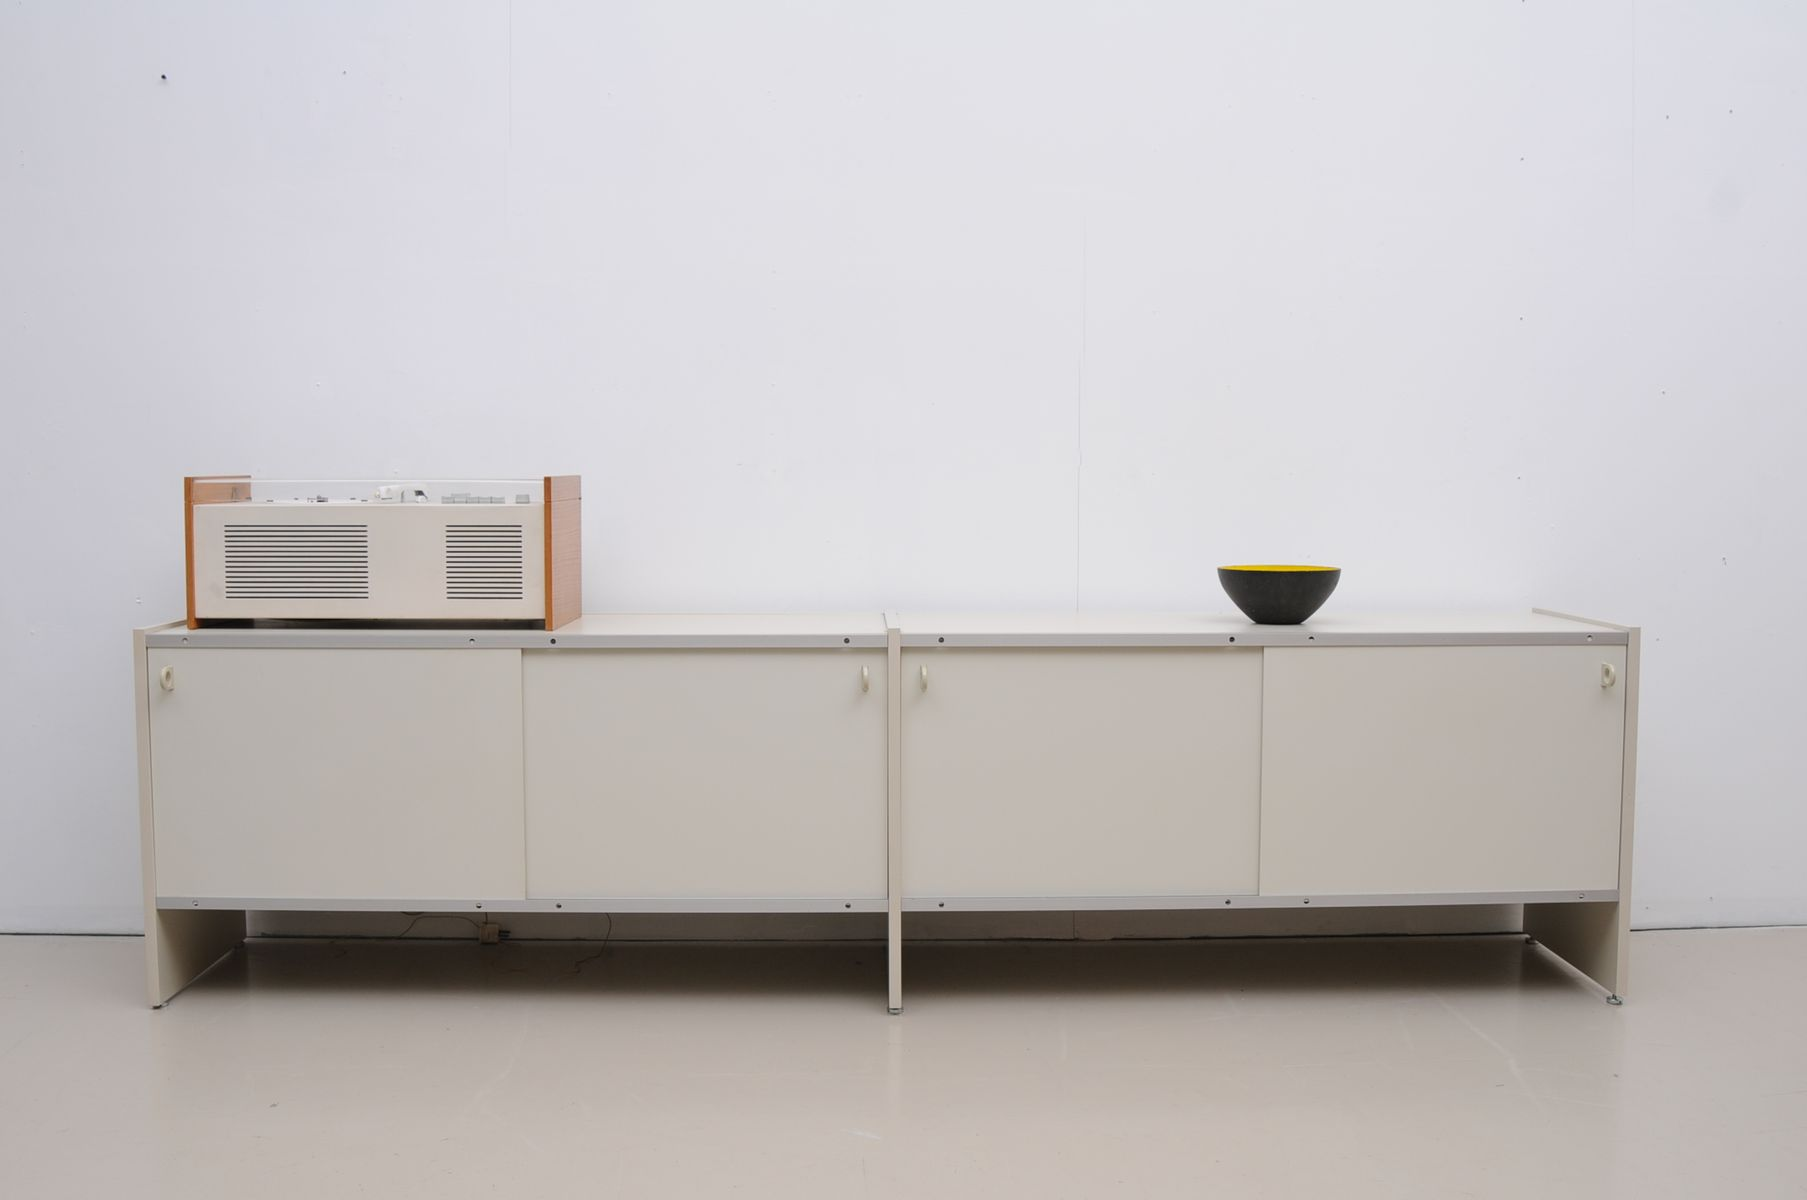 rz 57 sideboard von dieter rams f r otto zapf 1957 bei. Black Bedroom Furniture Sets. Home Design Ideas